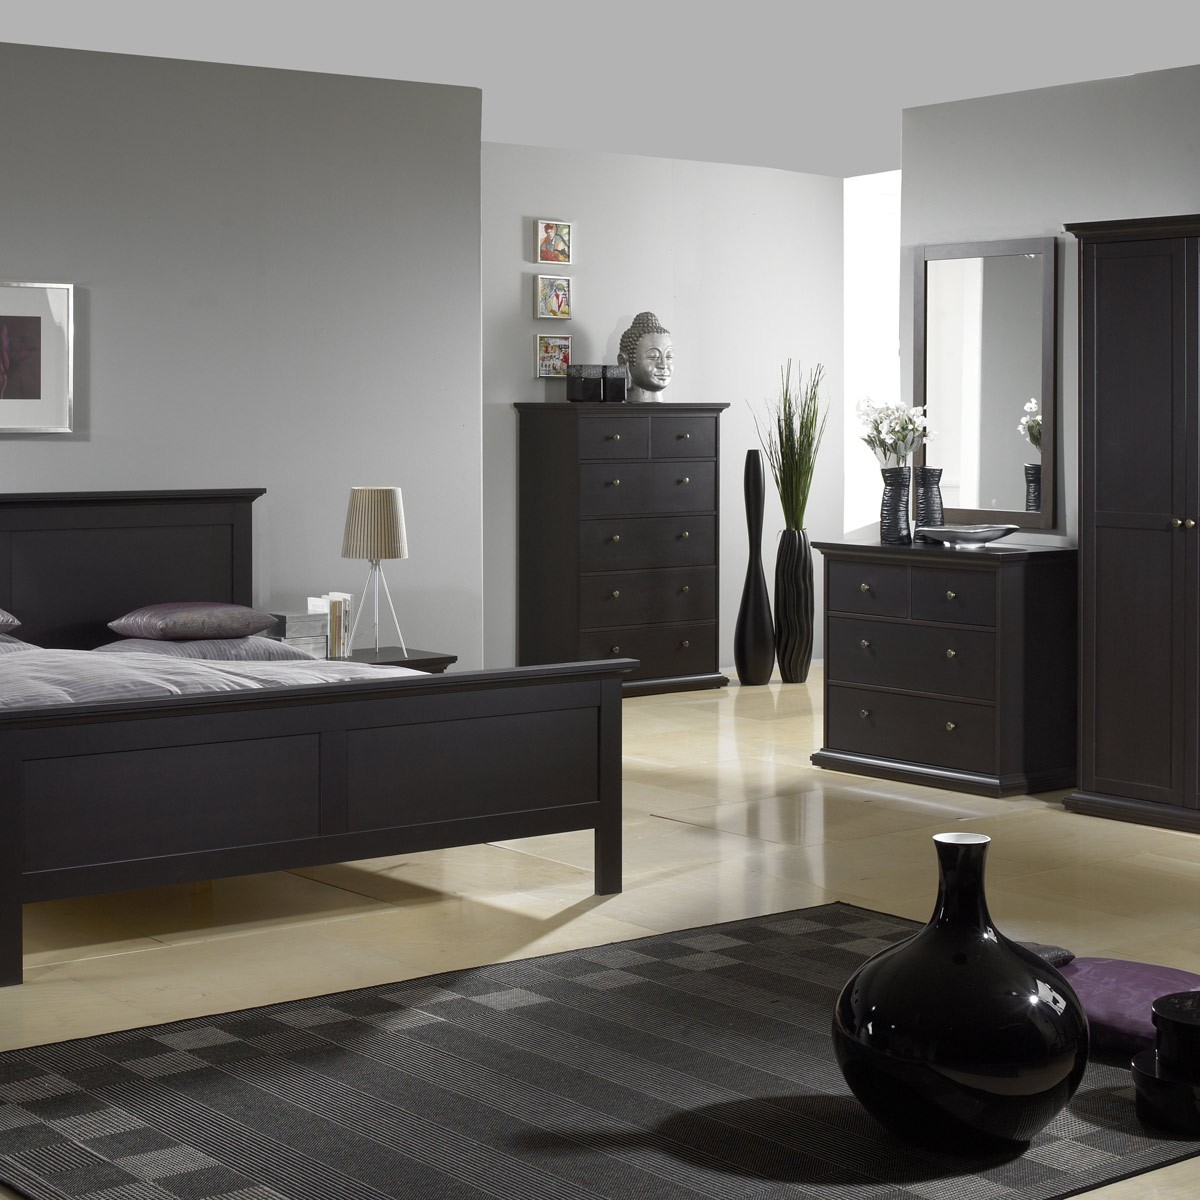 kommode venedig wei inspirierendes design f r wohnm bel. Black Bedroom Furniture Sets. Home Design Ideas